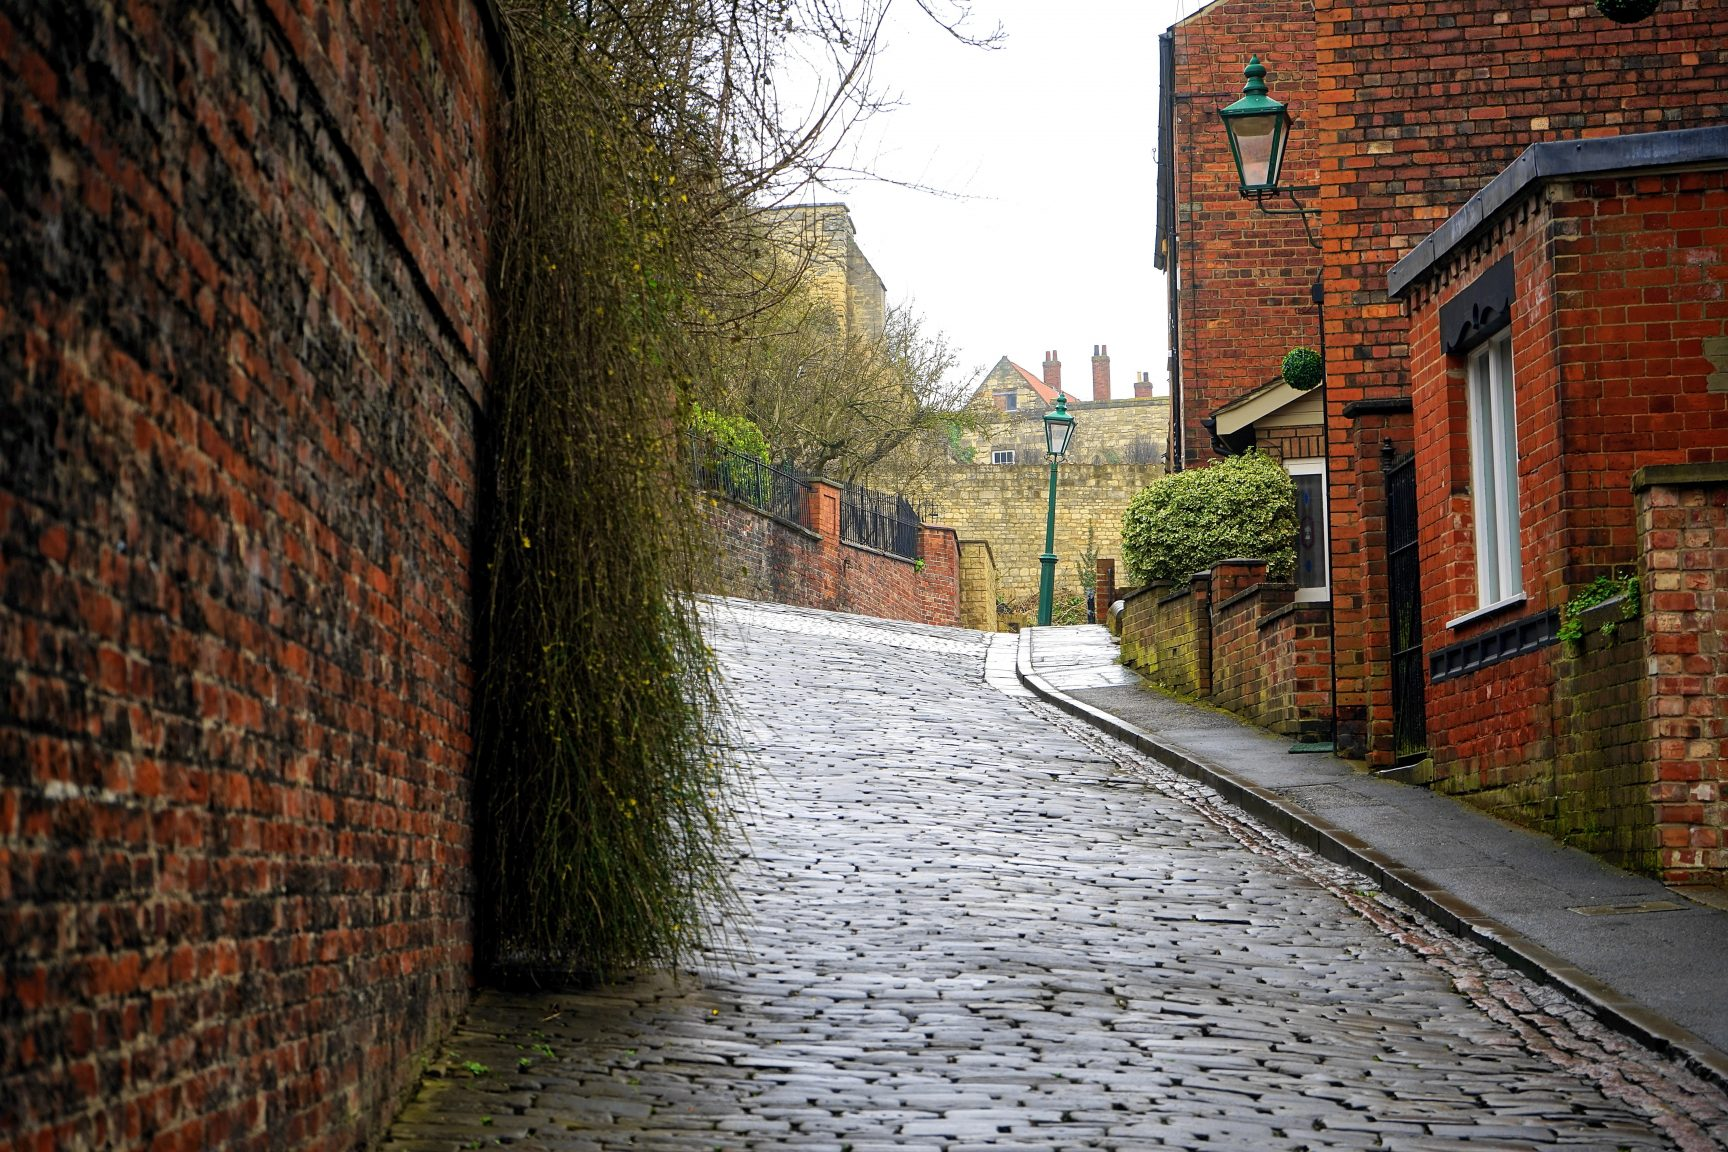 A small cobbled street, with red brick houses. It's a grey day and the street is damp.